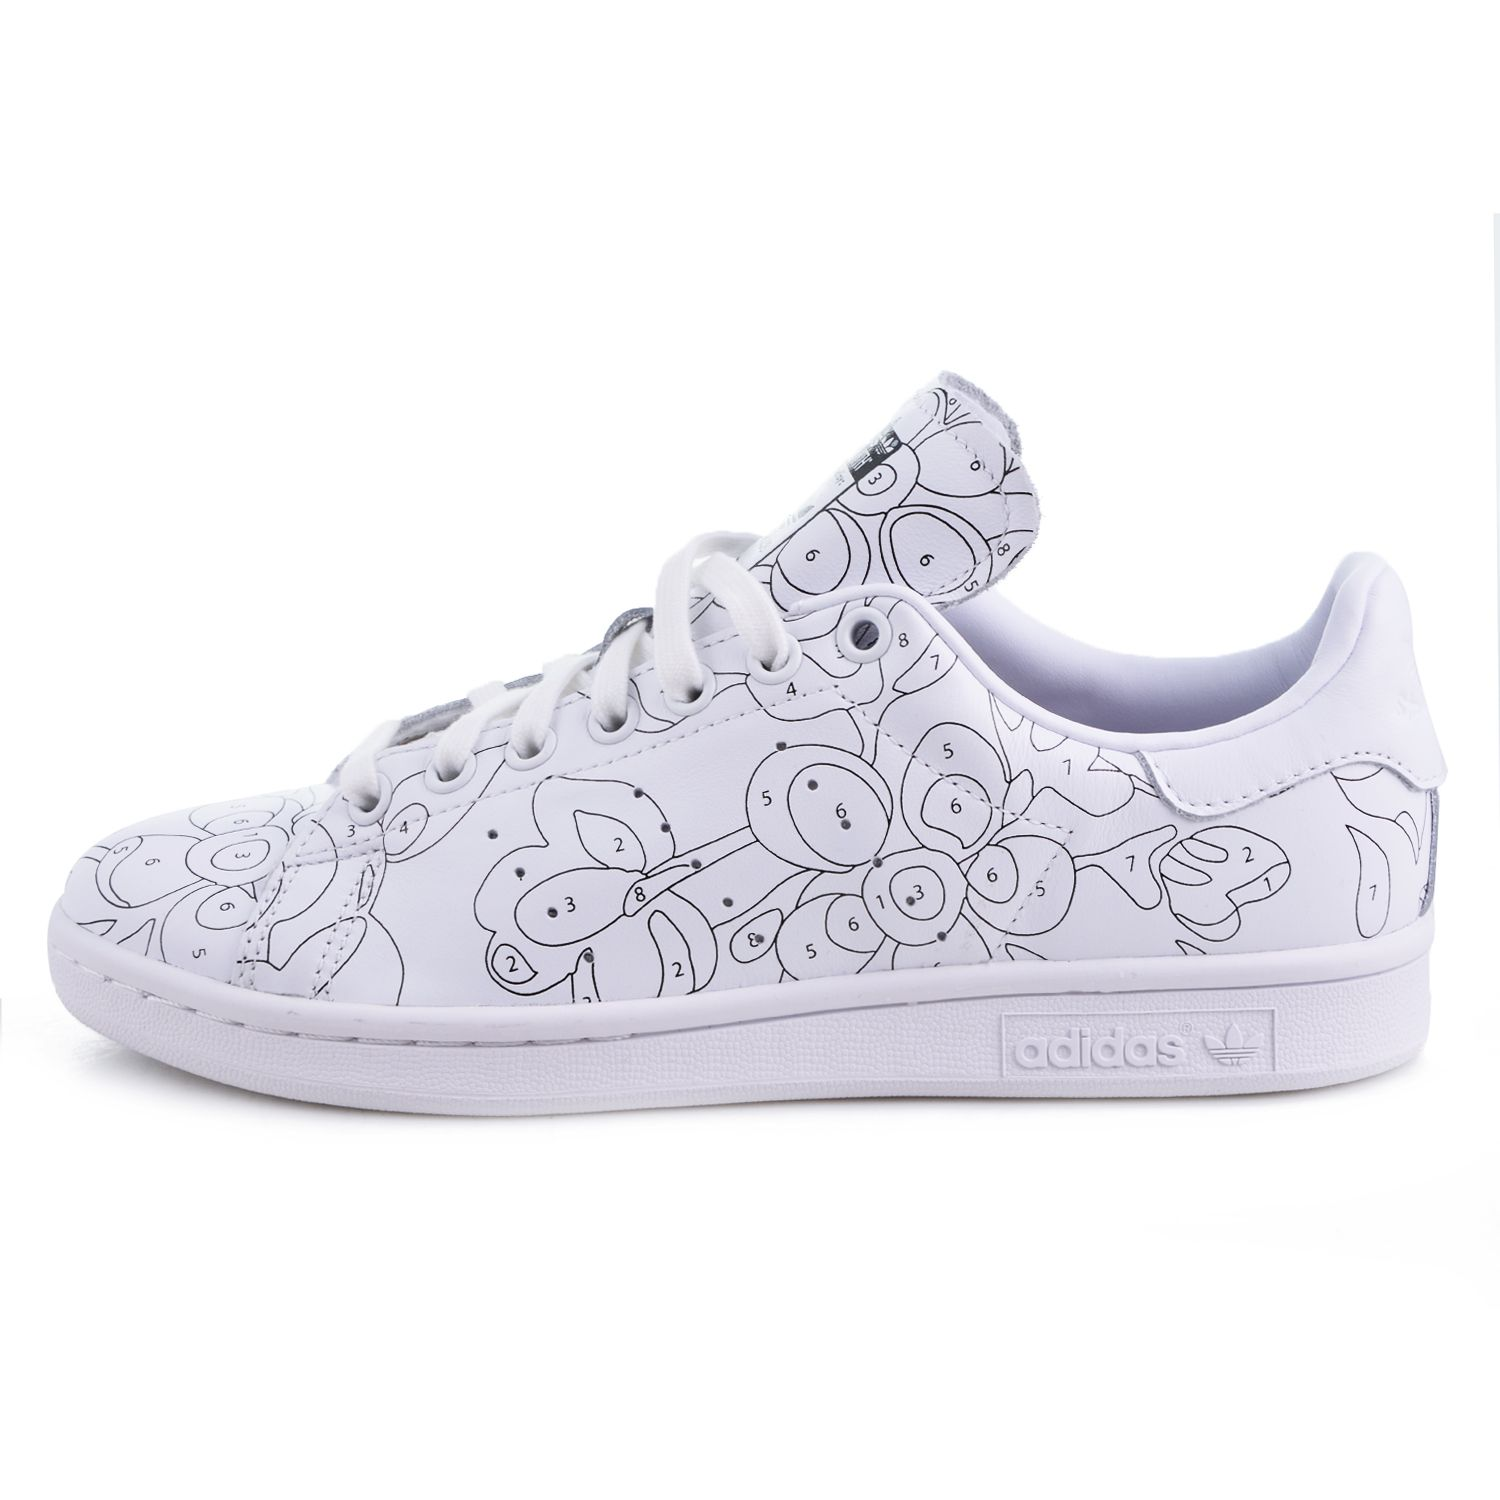 STAN SMITH   lovely shoes en 2019   Customiser chaussures